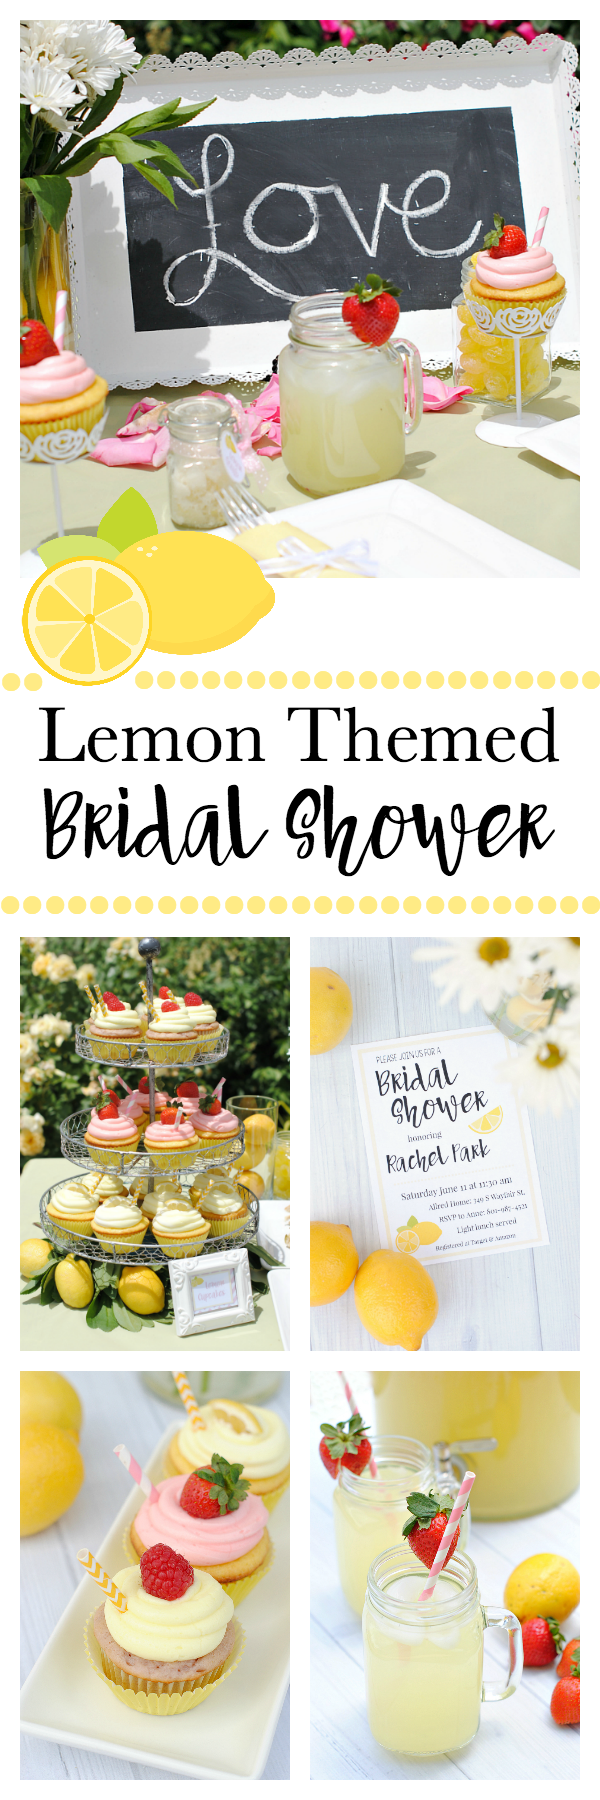 Lemon Themed Bridal Shower Ideas